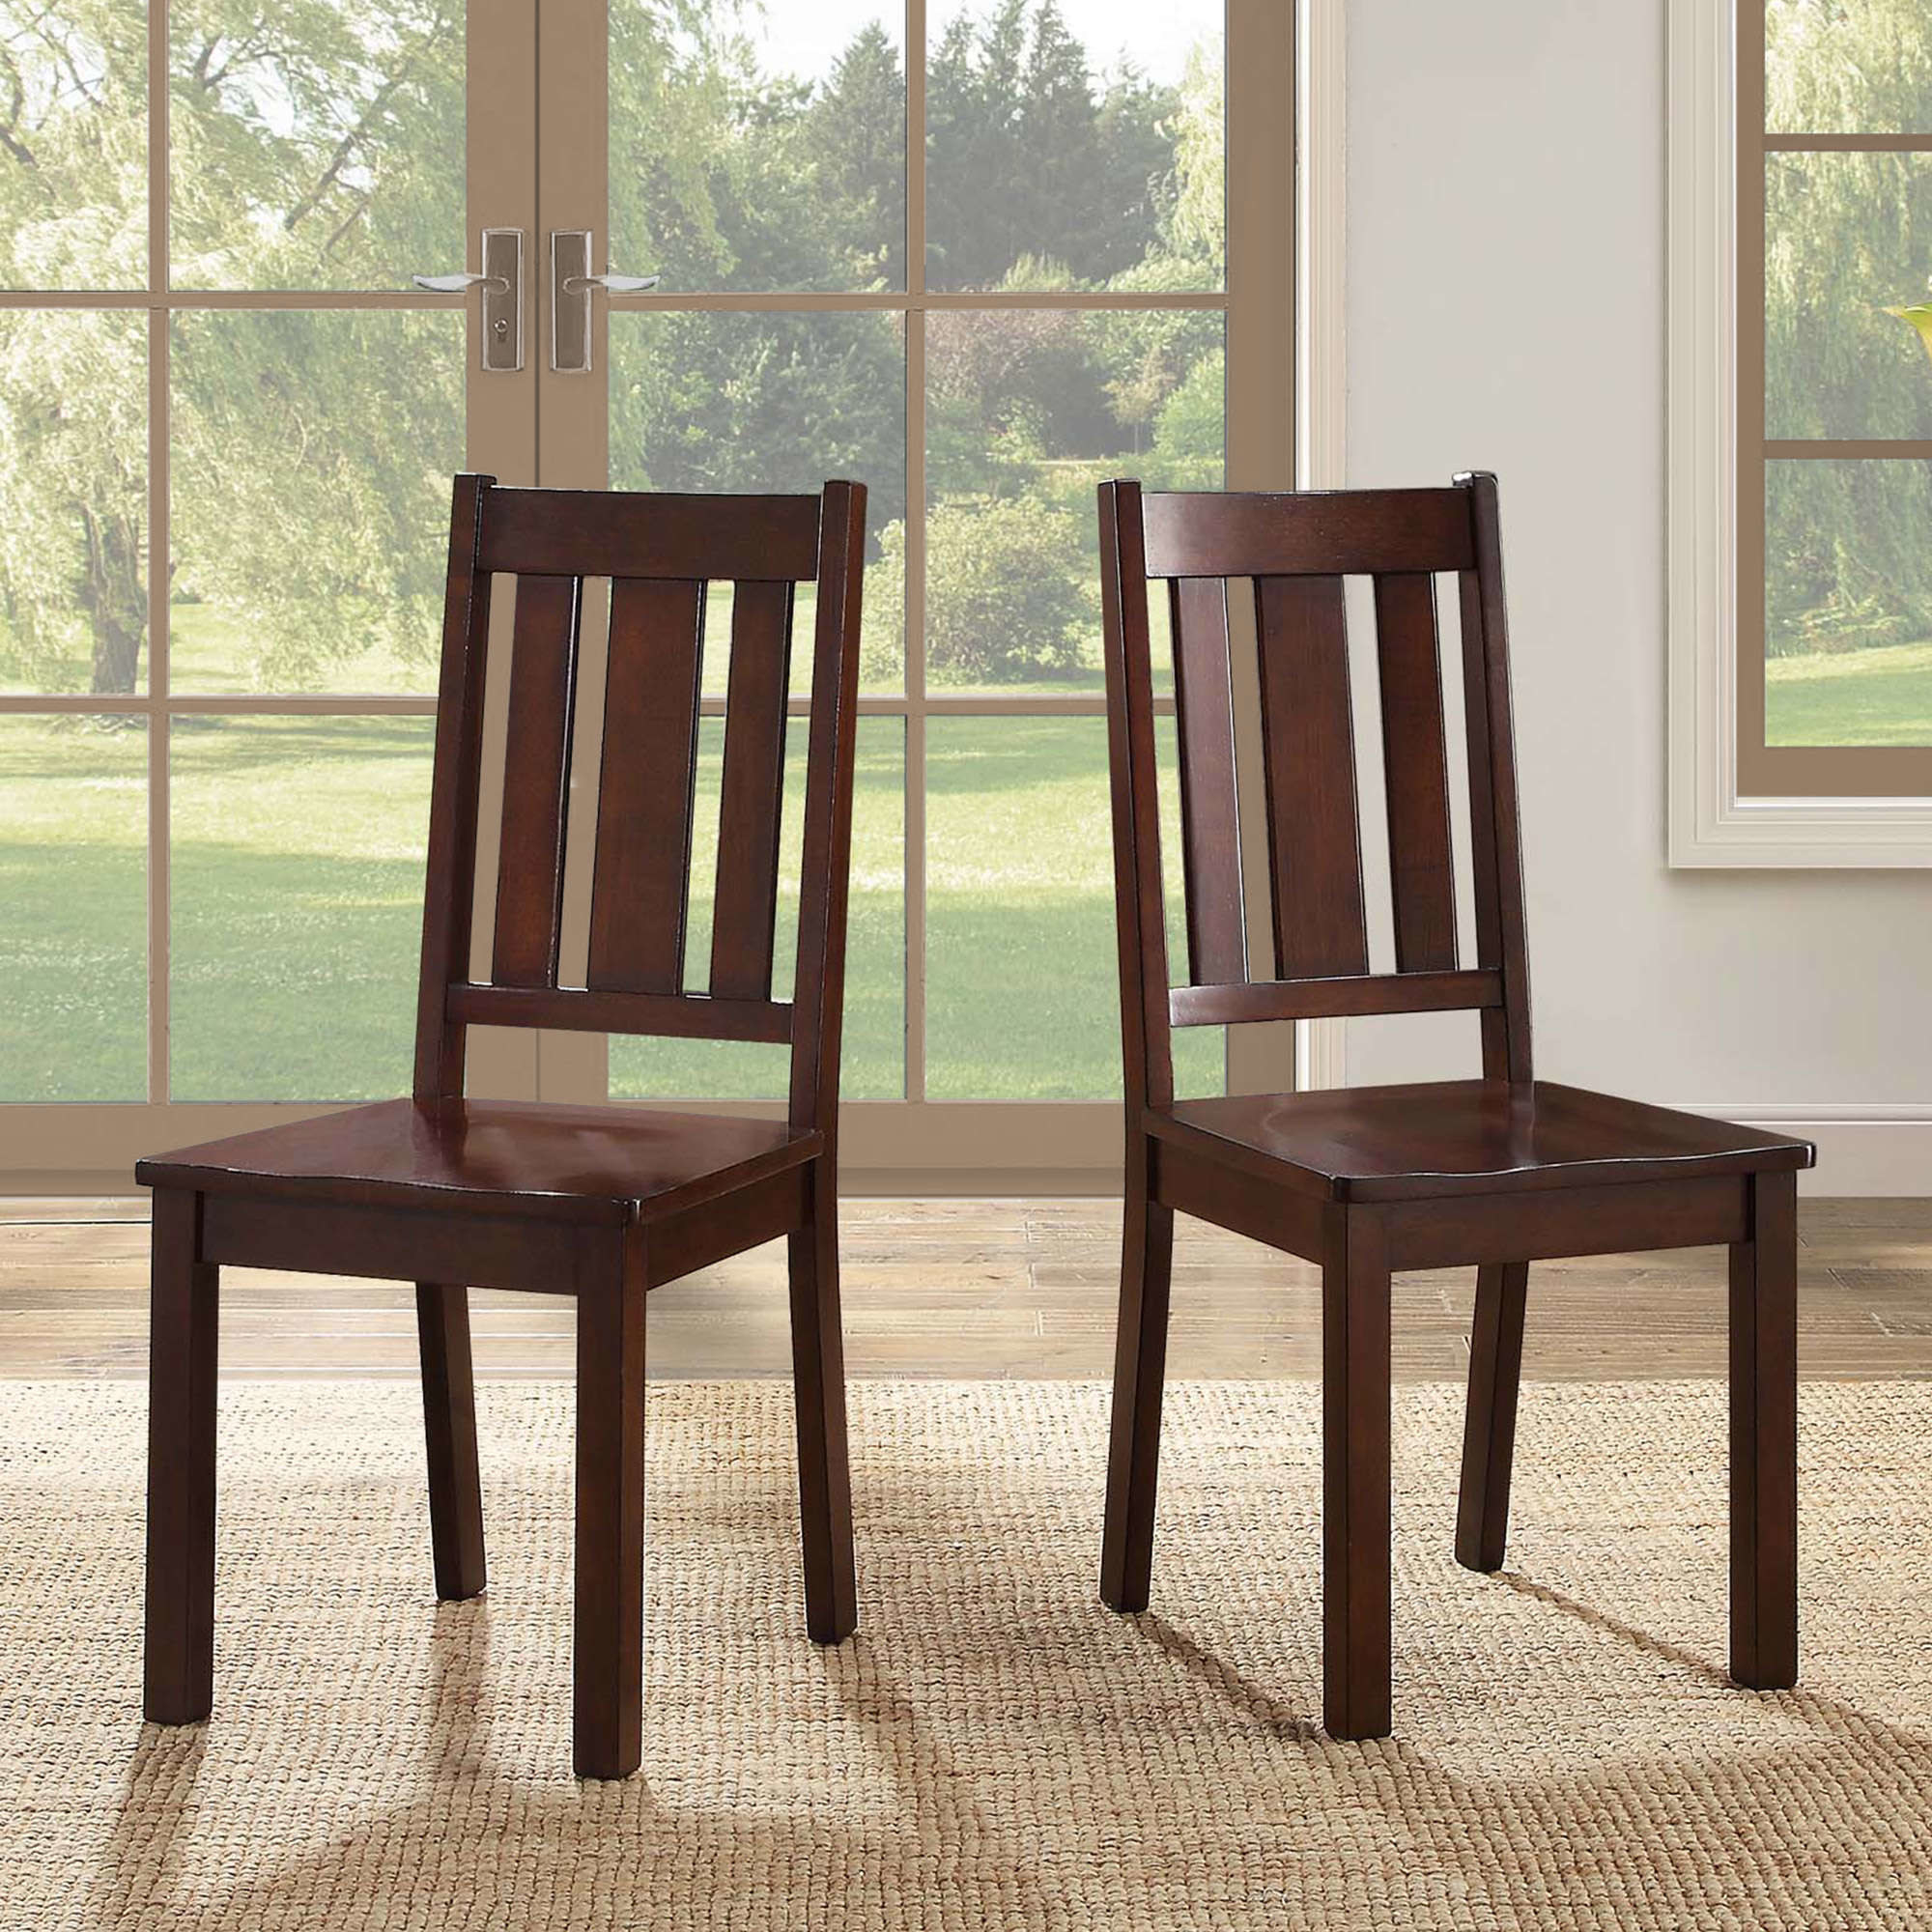 The dark brown dining chairs in front of a window